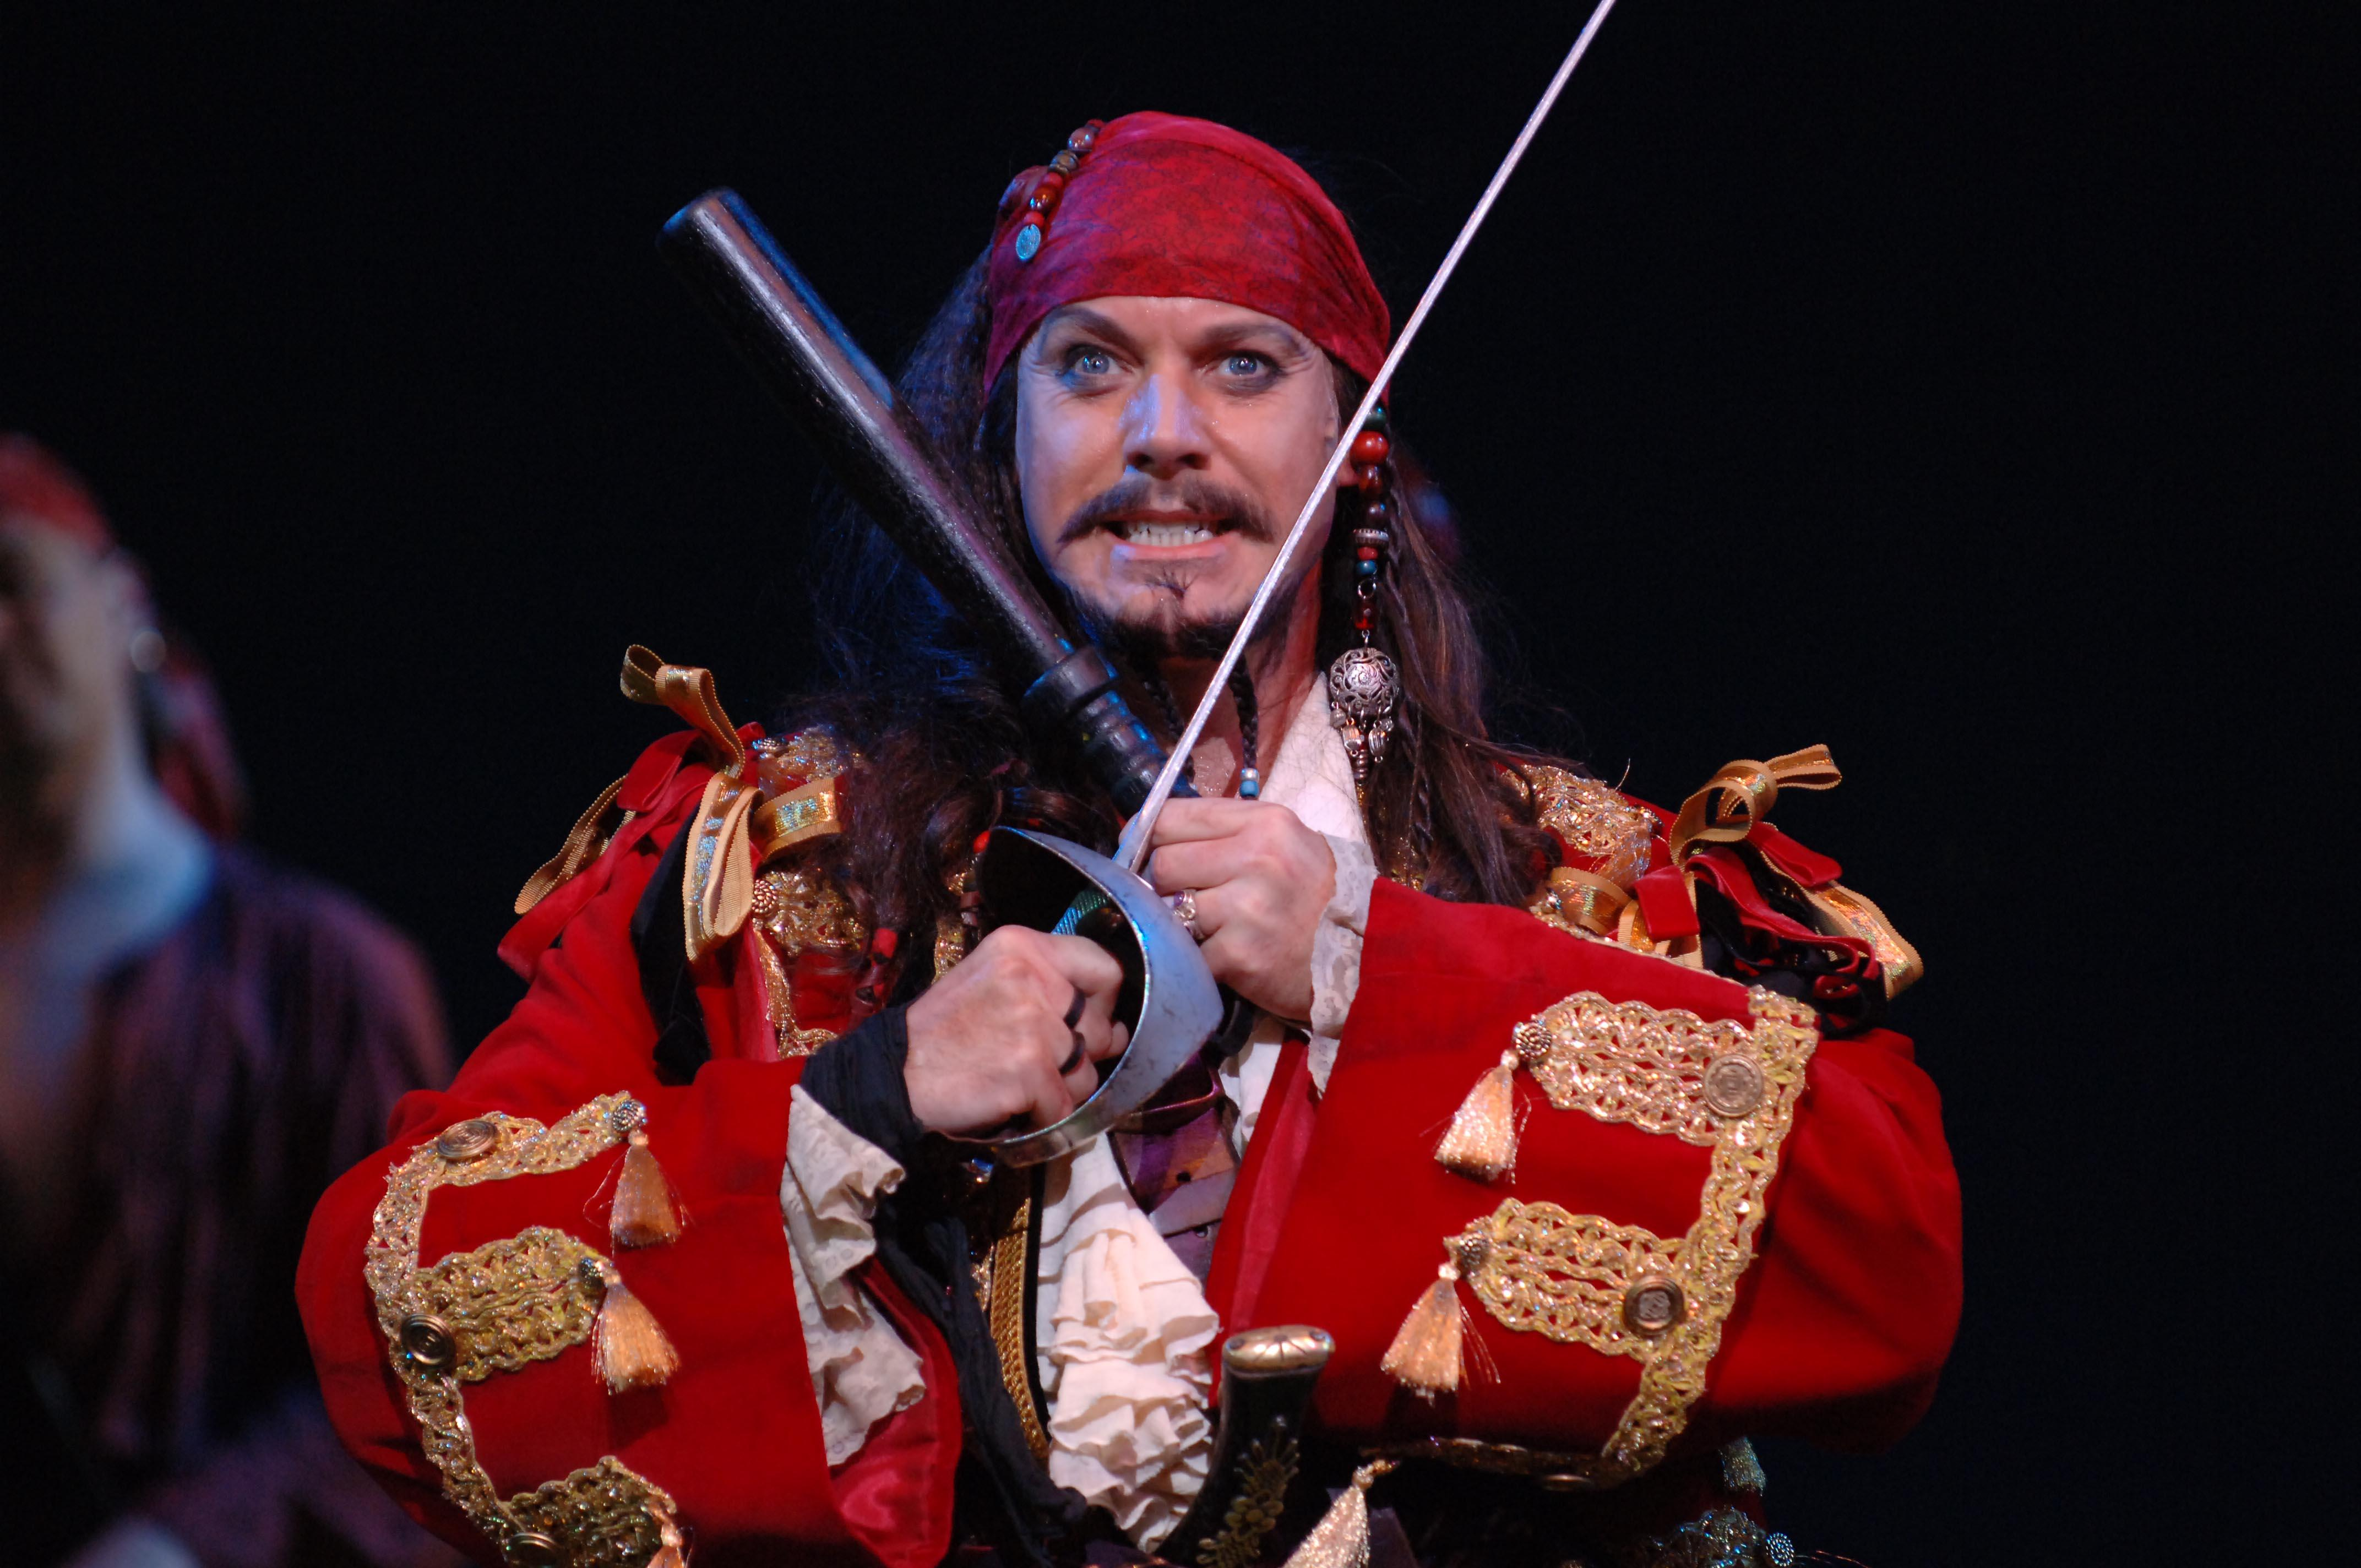 an analysis of the pirates of penzance by gilbert and sullivan Around the world ( and in multiple languages ) the great scriptwriter and lyricist sir w s gilbert's and the grand and marvelous composer sir arthur sullivan's wonderful comic opera and musical theatre masterpiece the pirates of penzance has been performed literally thousands of times since.